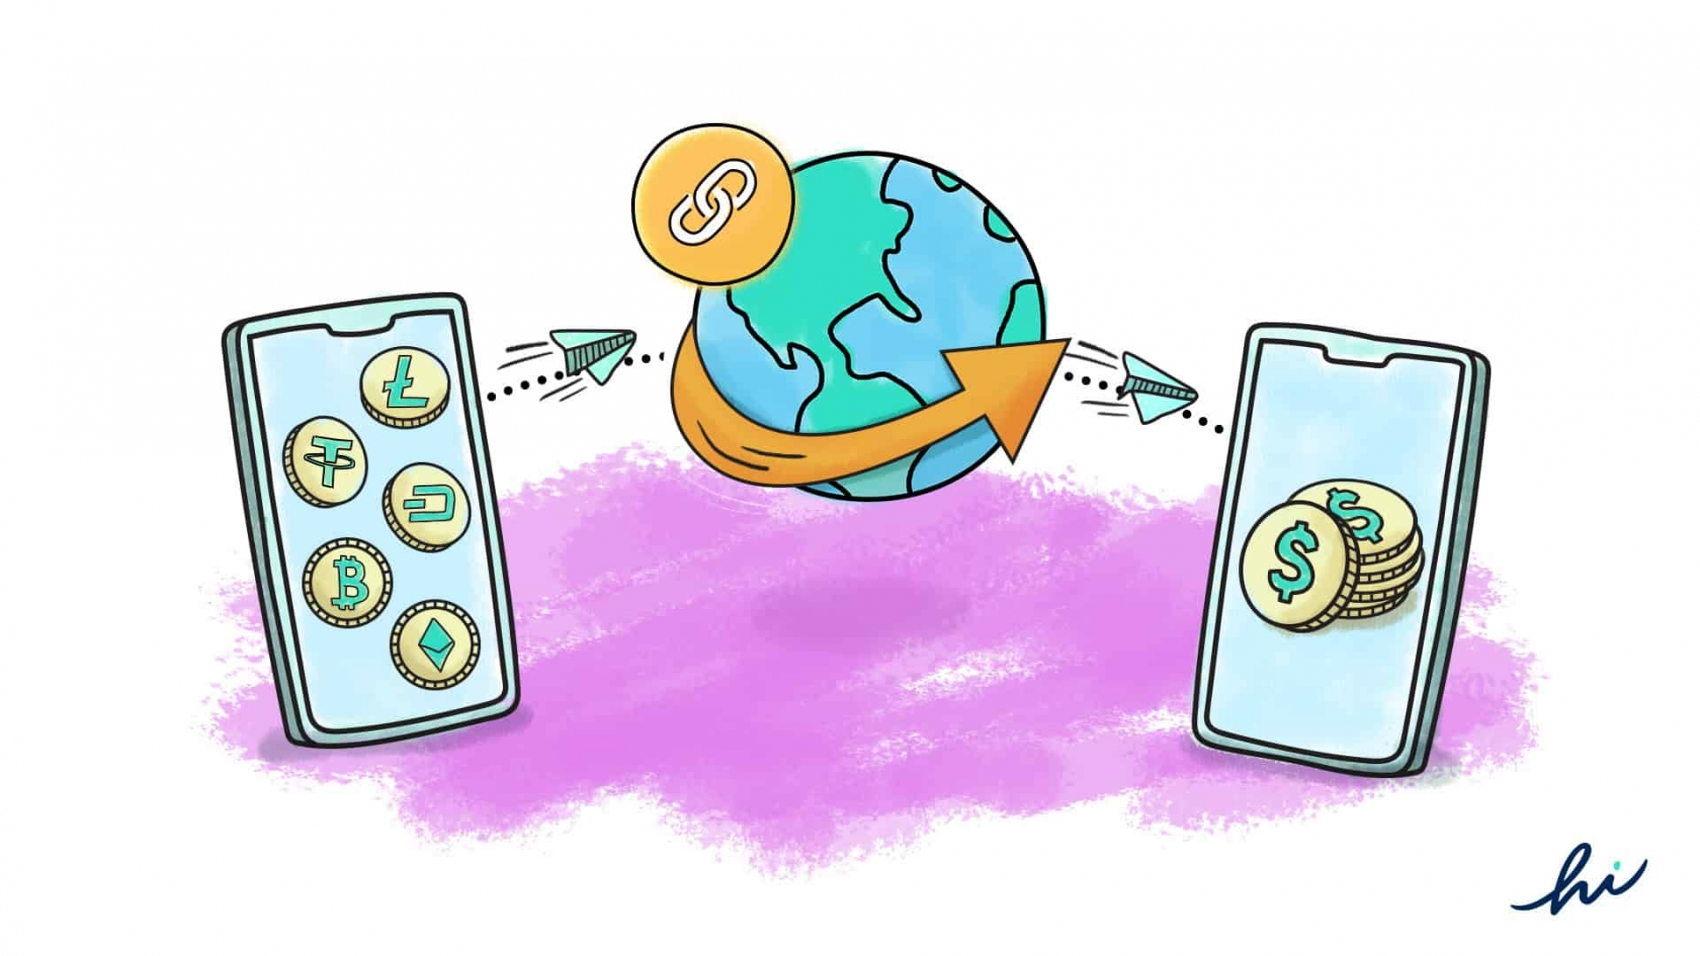 Remittance payments globally